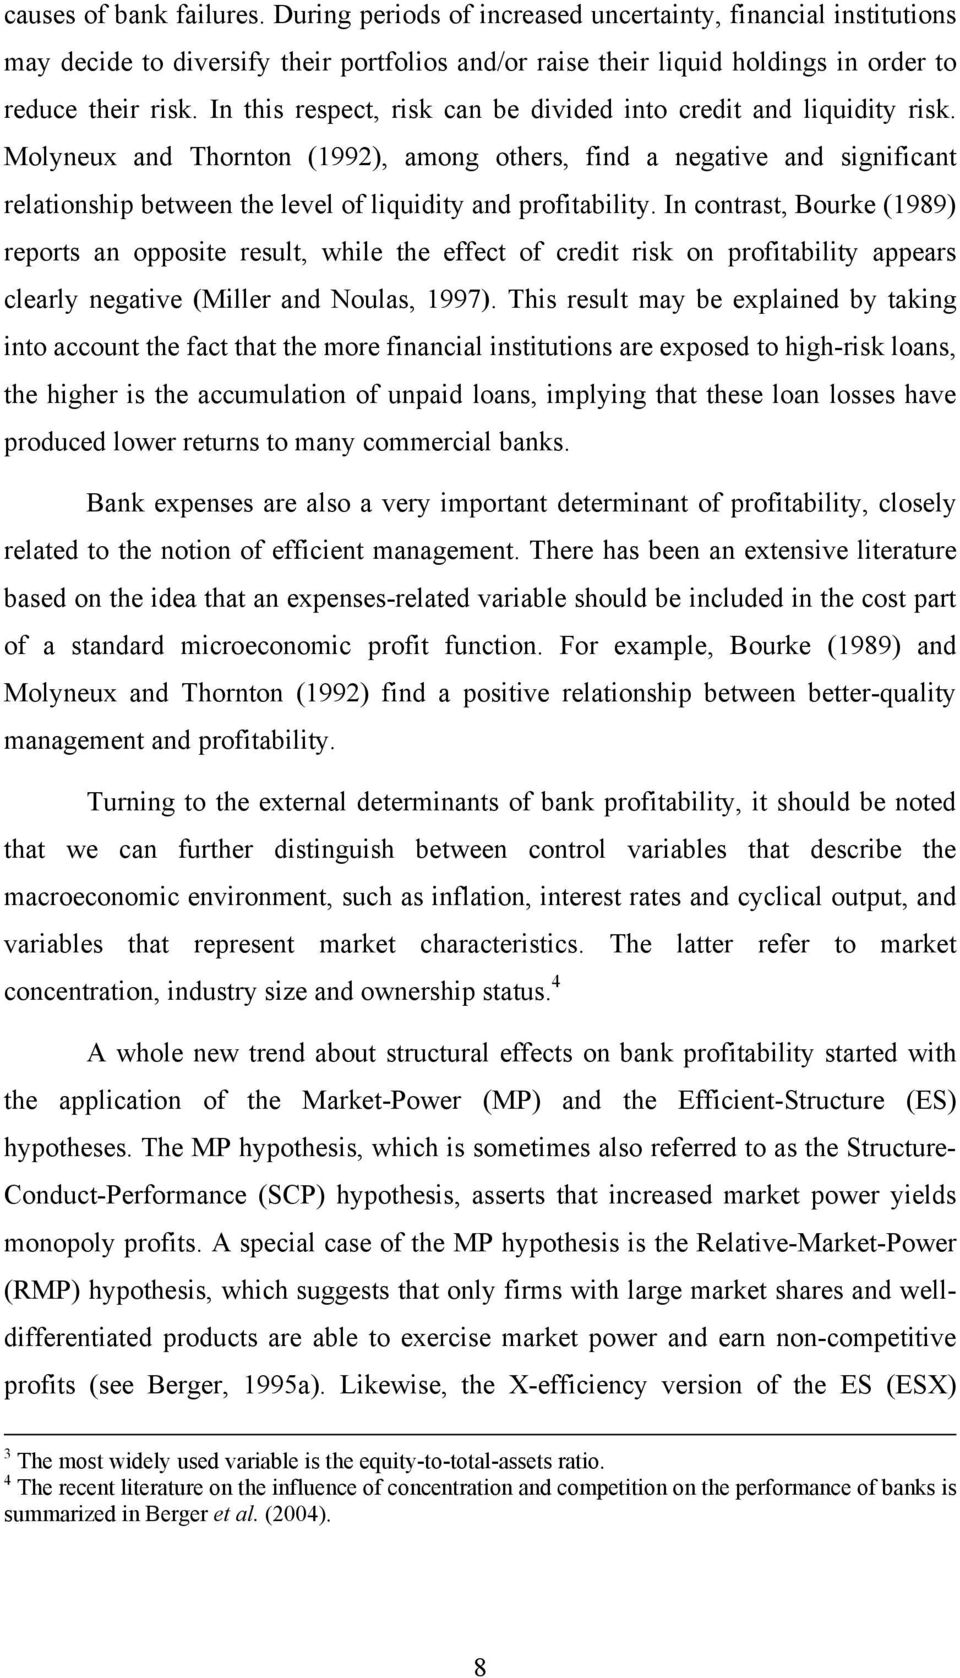 Molyneux and Thornton (199), among others, find a negative and significant relationship between the level of liquidity and profitability.